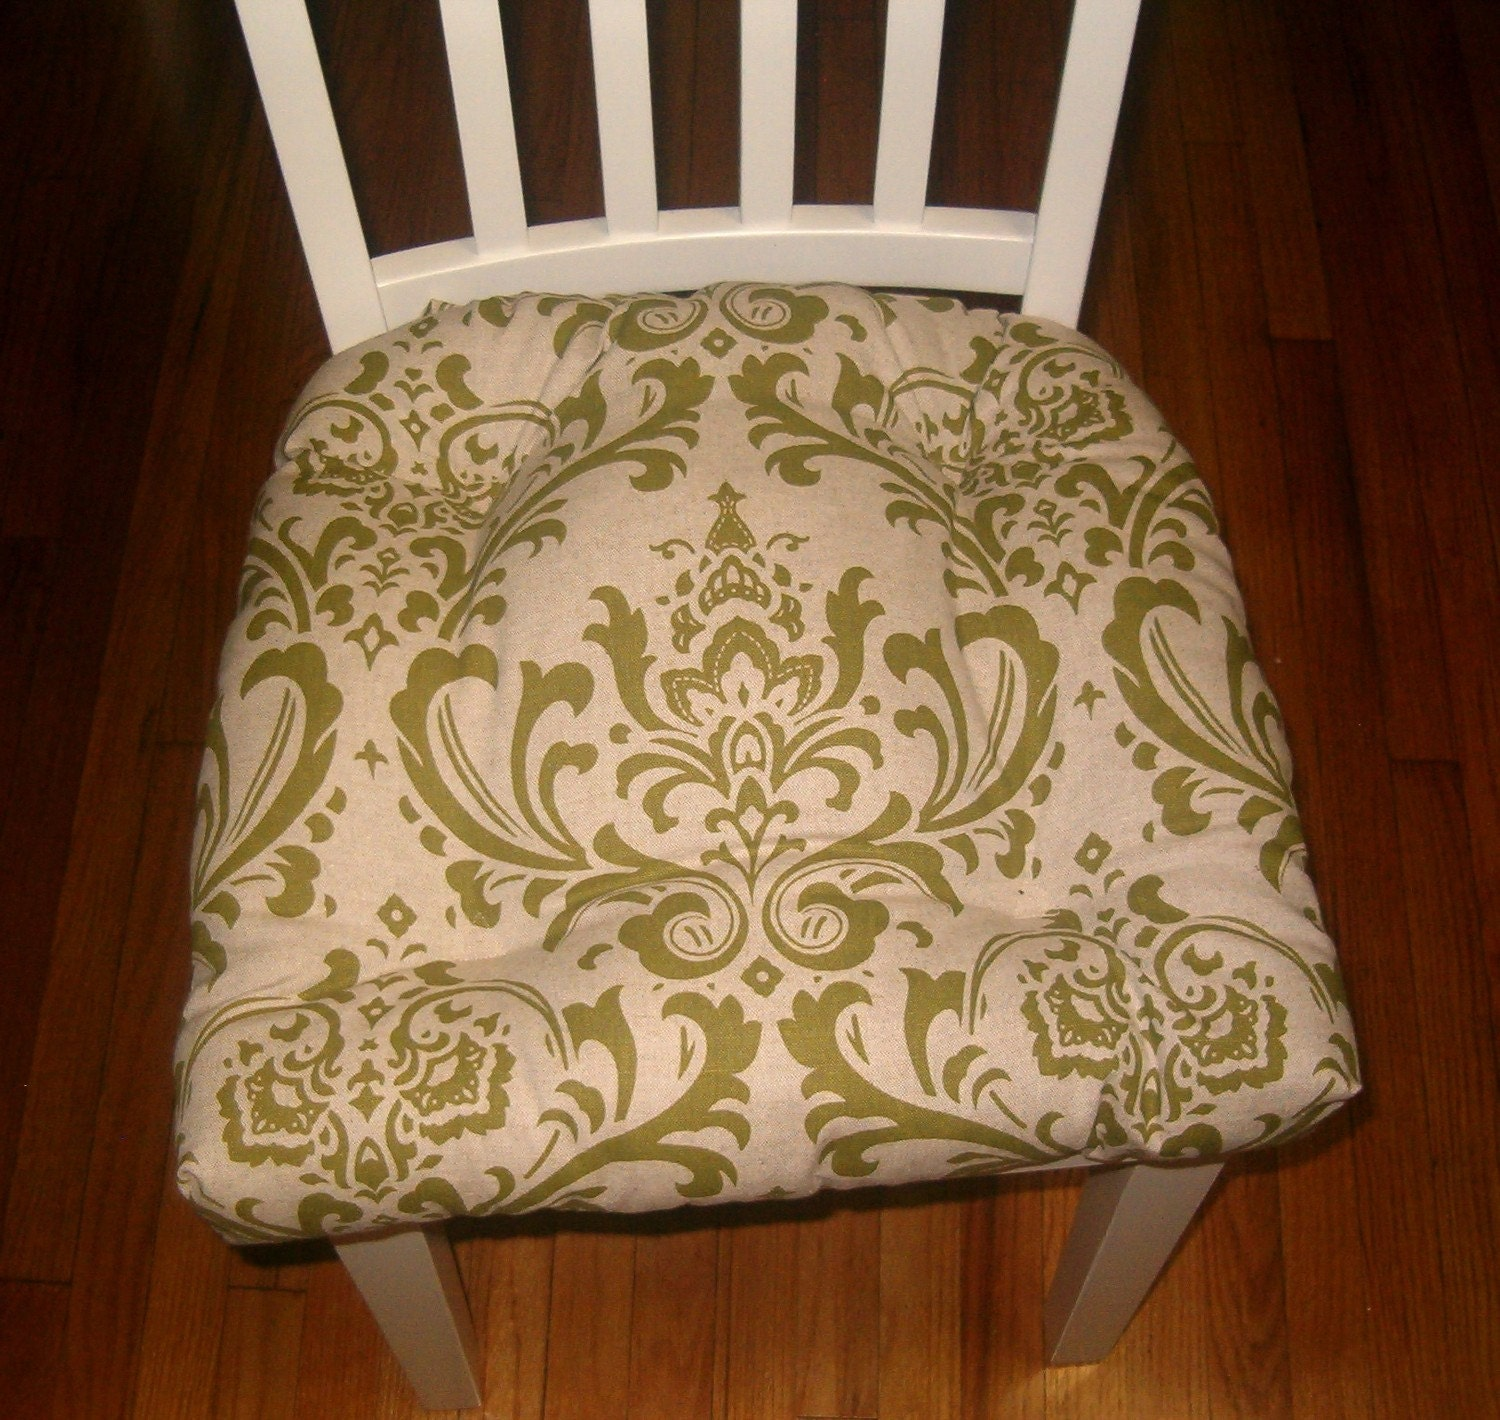 set of 4 Olive green damask chair pads tufted by kirtamdesigns : ilfullxfull185725184 from www.etsy.com size 1500 x 1420 jpeg 450kB